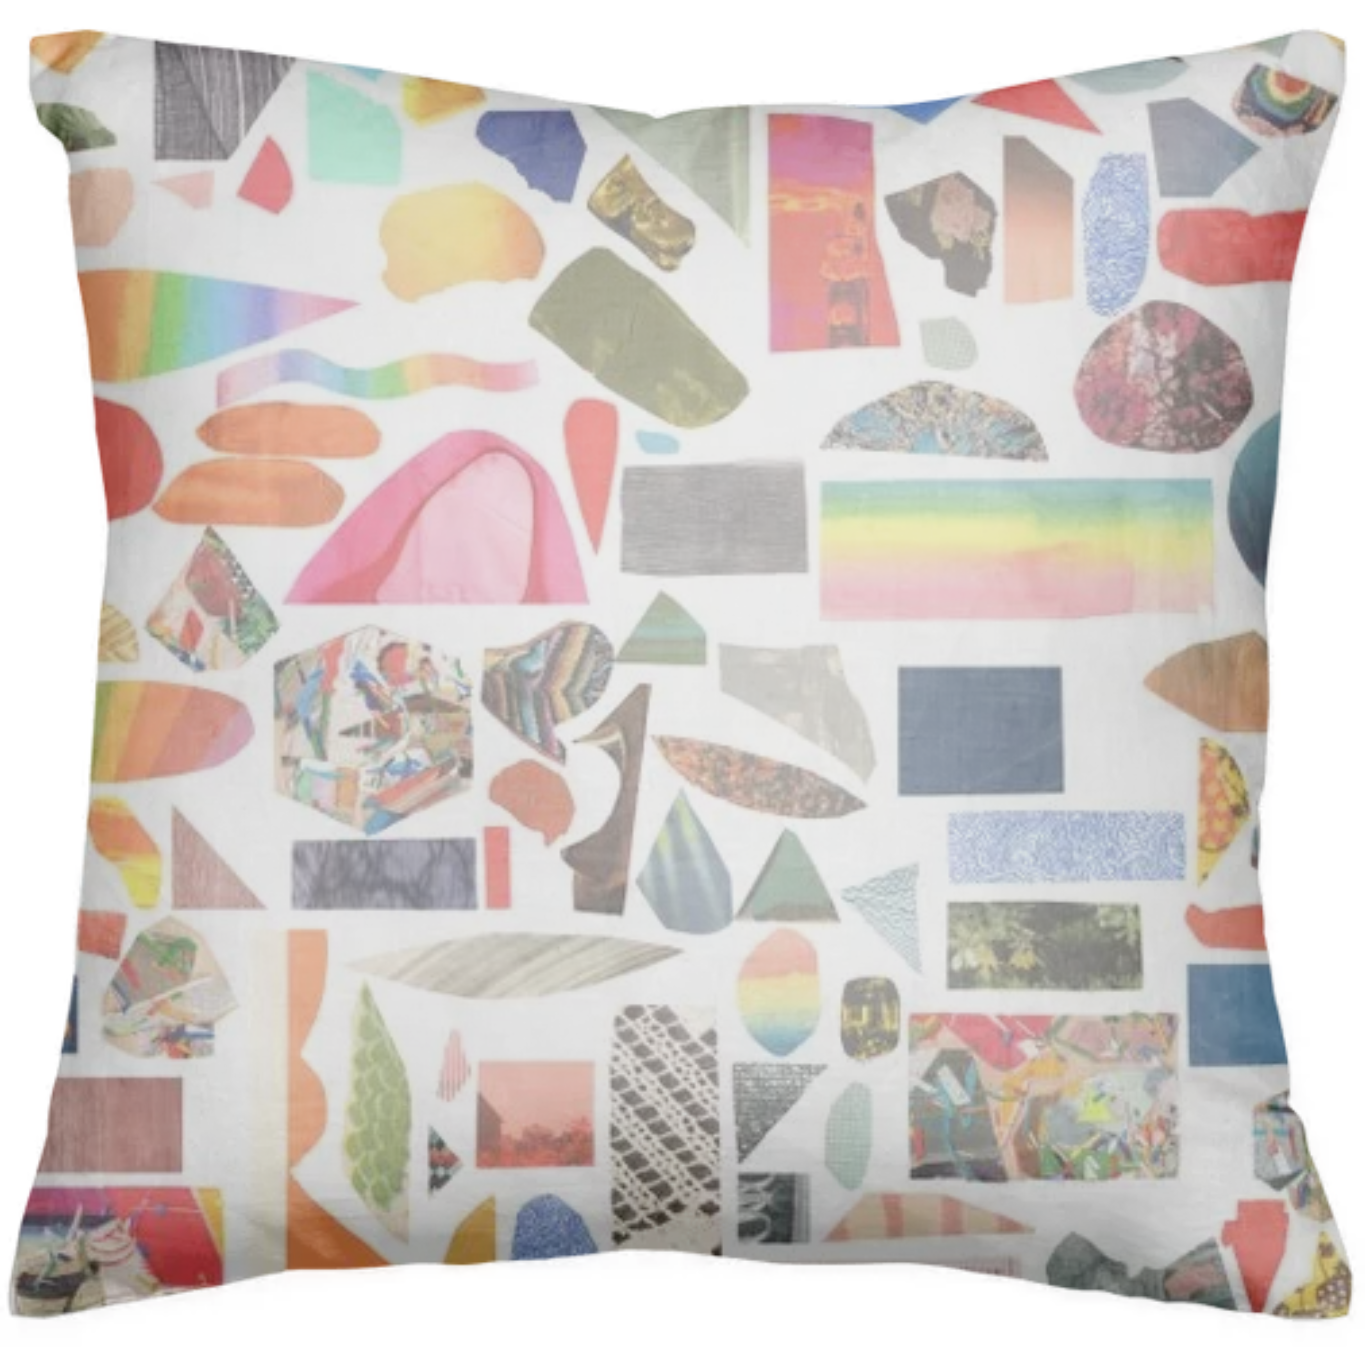 shop collage pillow pillow by brandistrickland print all over me